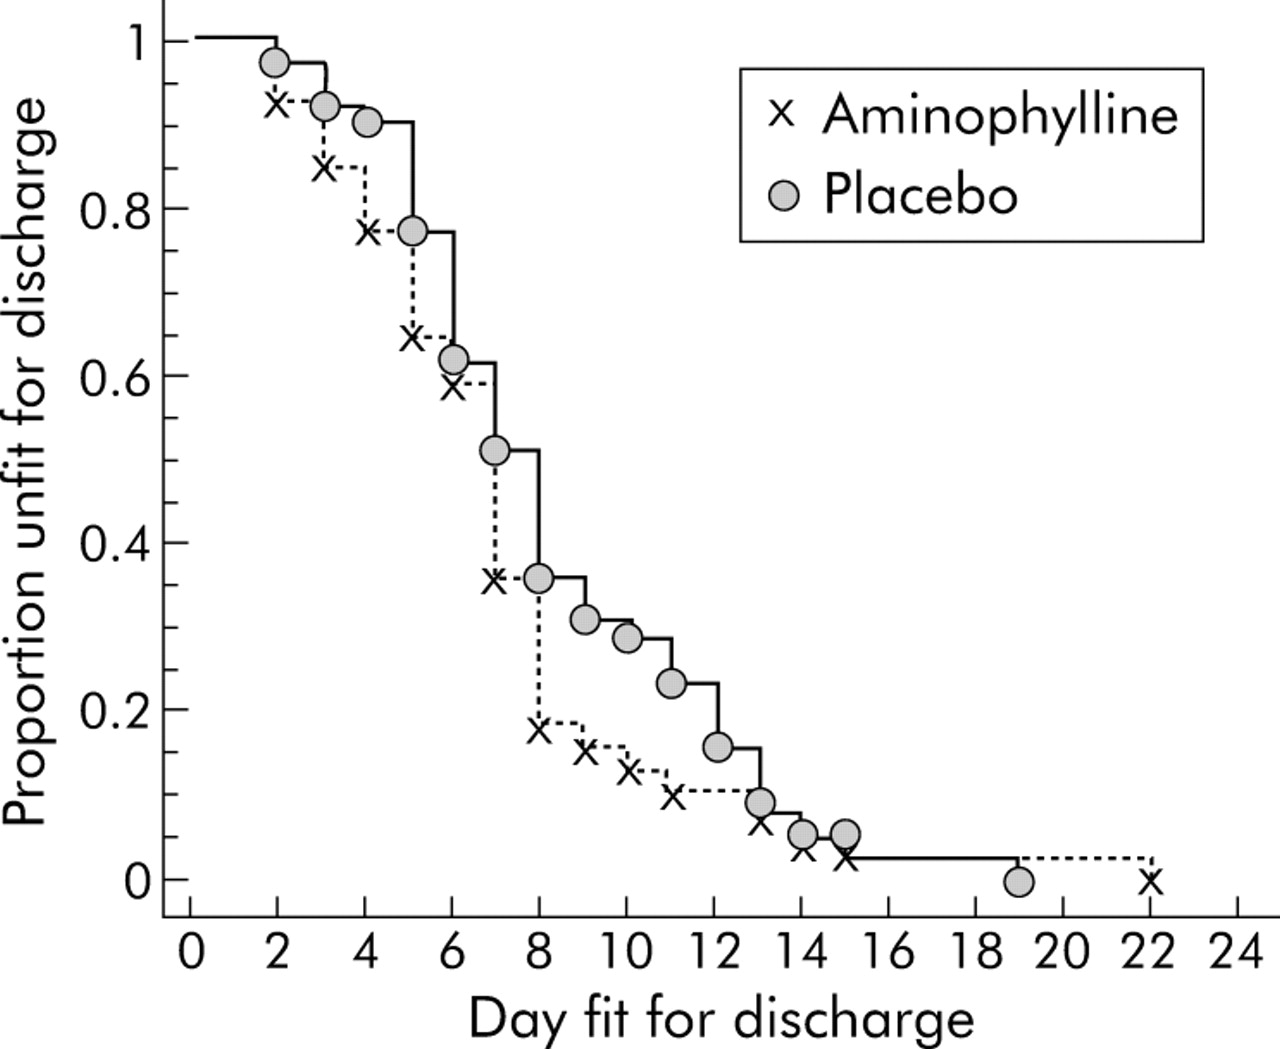 Intravenous aminophylline in patients admitted to hospital